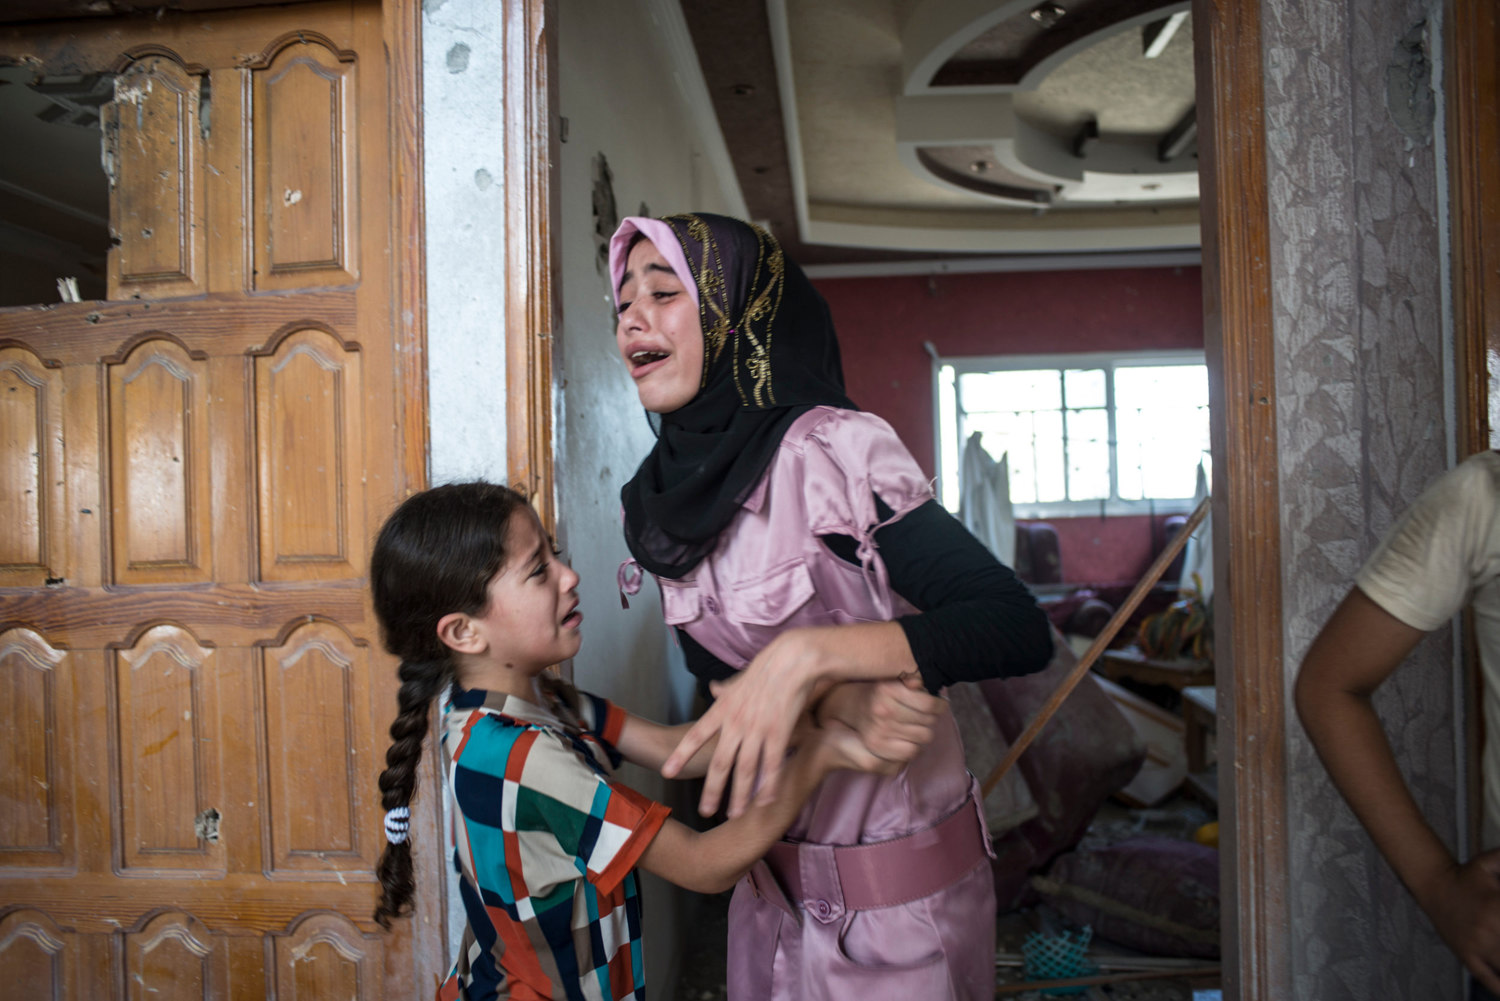 Haneen Harara, 15, and her sister Yasmeen Harara 6 cry upon seeing their family home for the first time. The sisters have lived in this house their whole life and have no where else to go. They are currently living in a UN shelter.